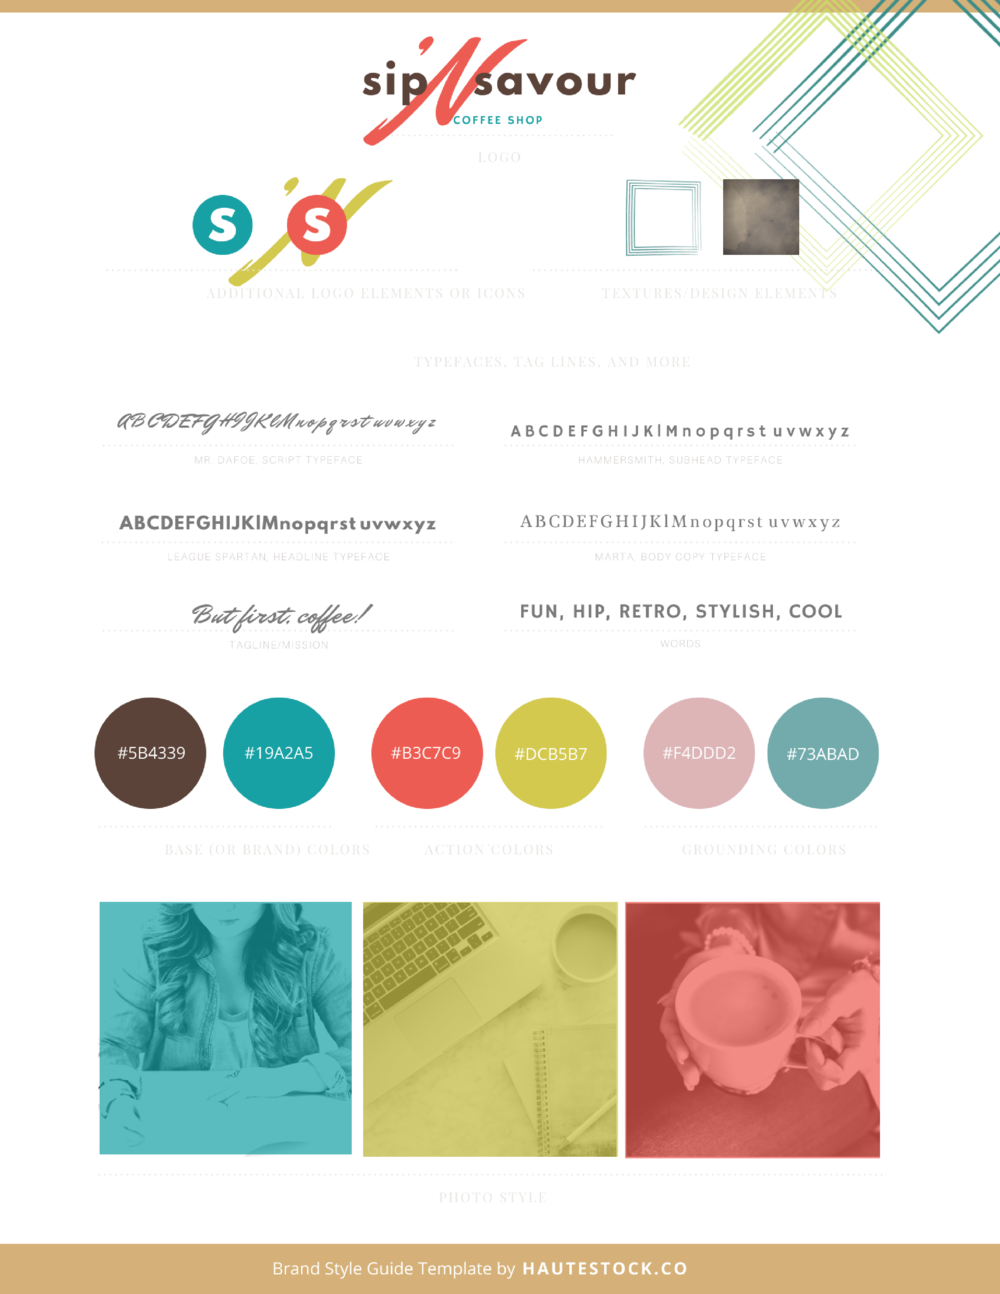 How To Create Your Brand Style Guide Why You Need It And The Must - Brand style guide template